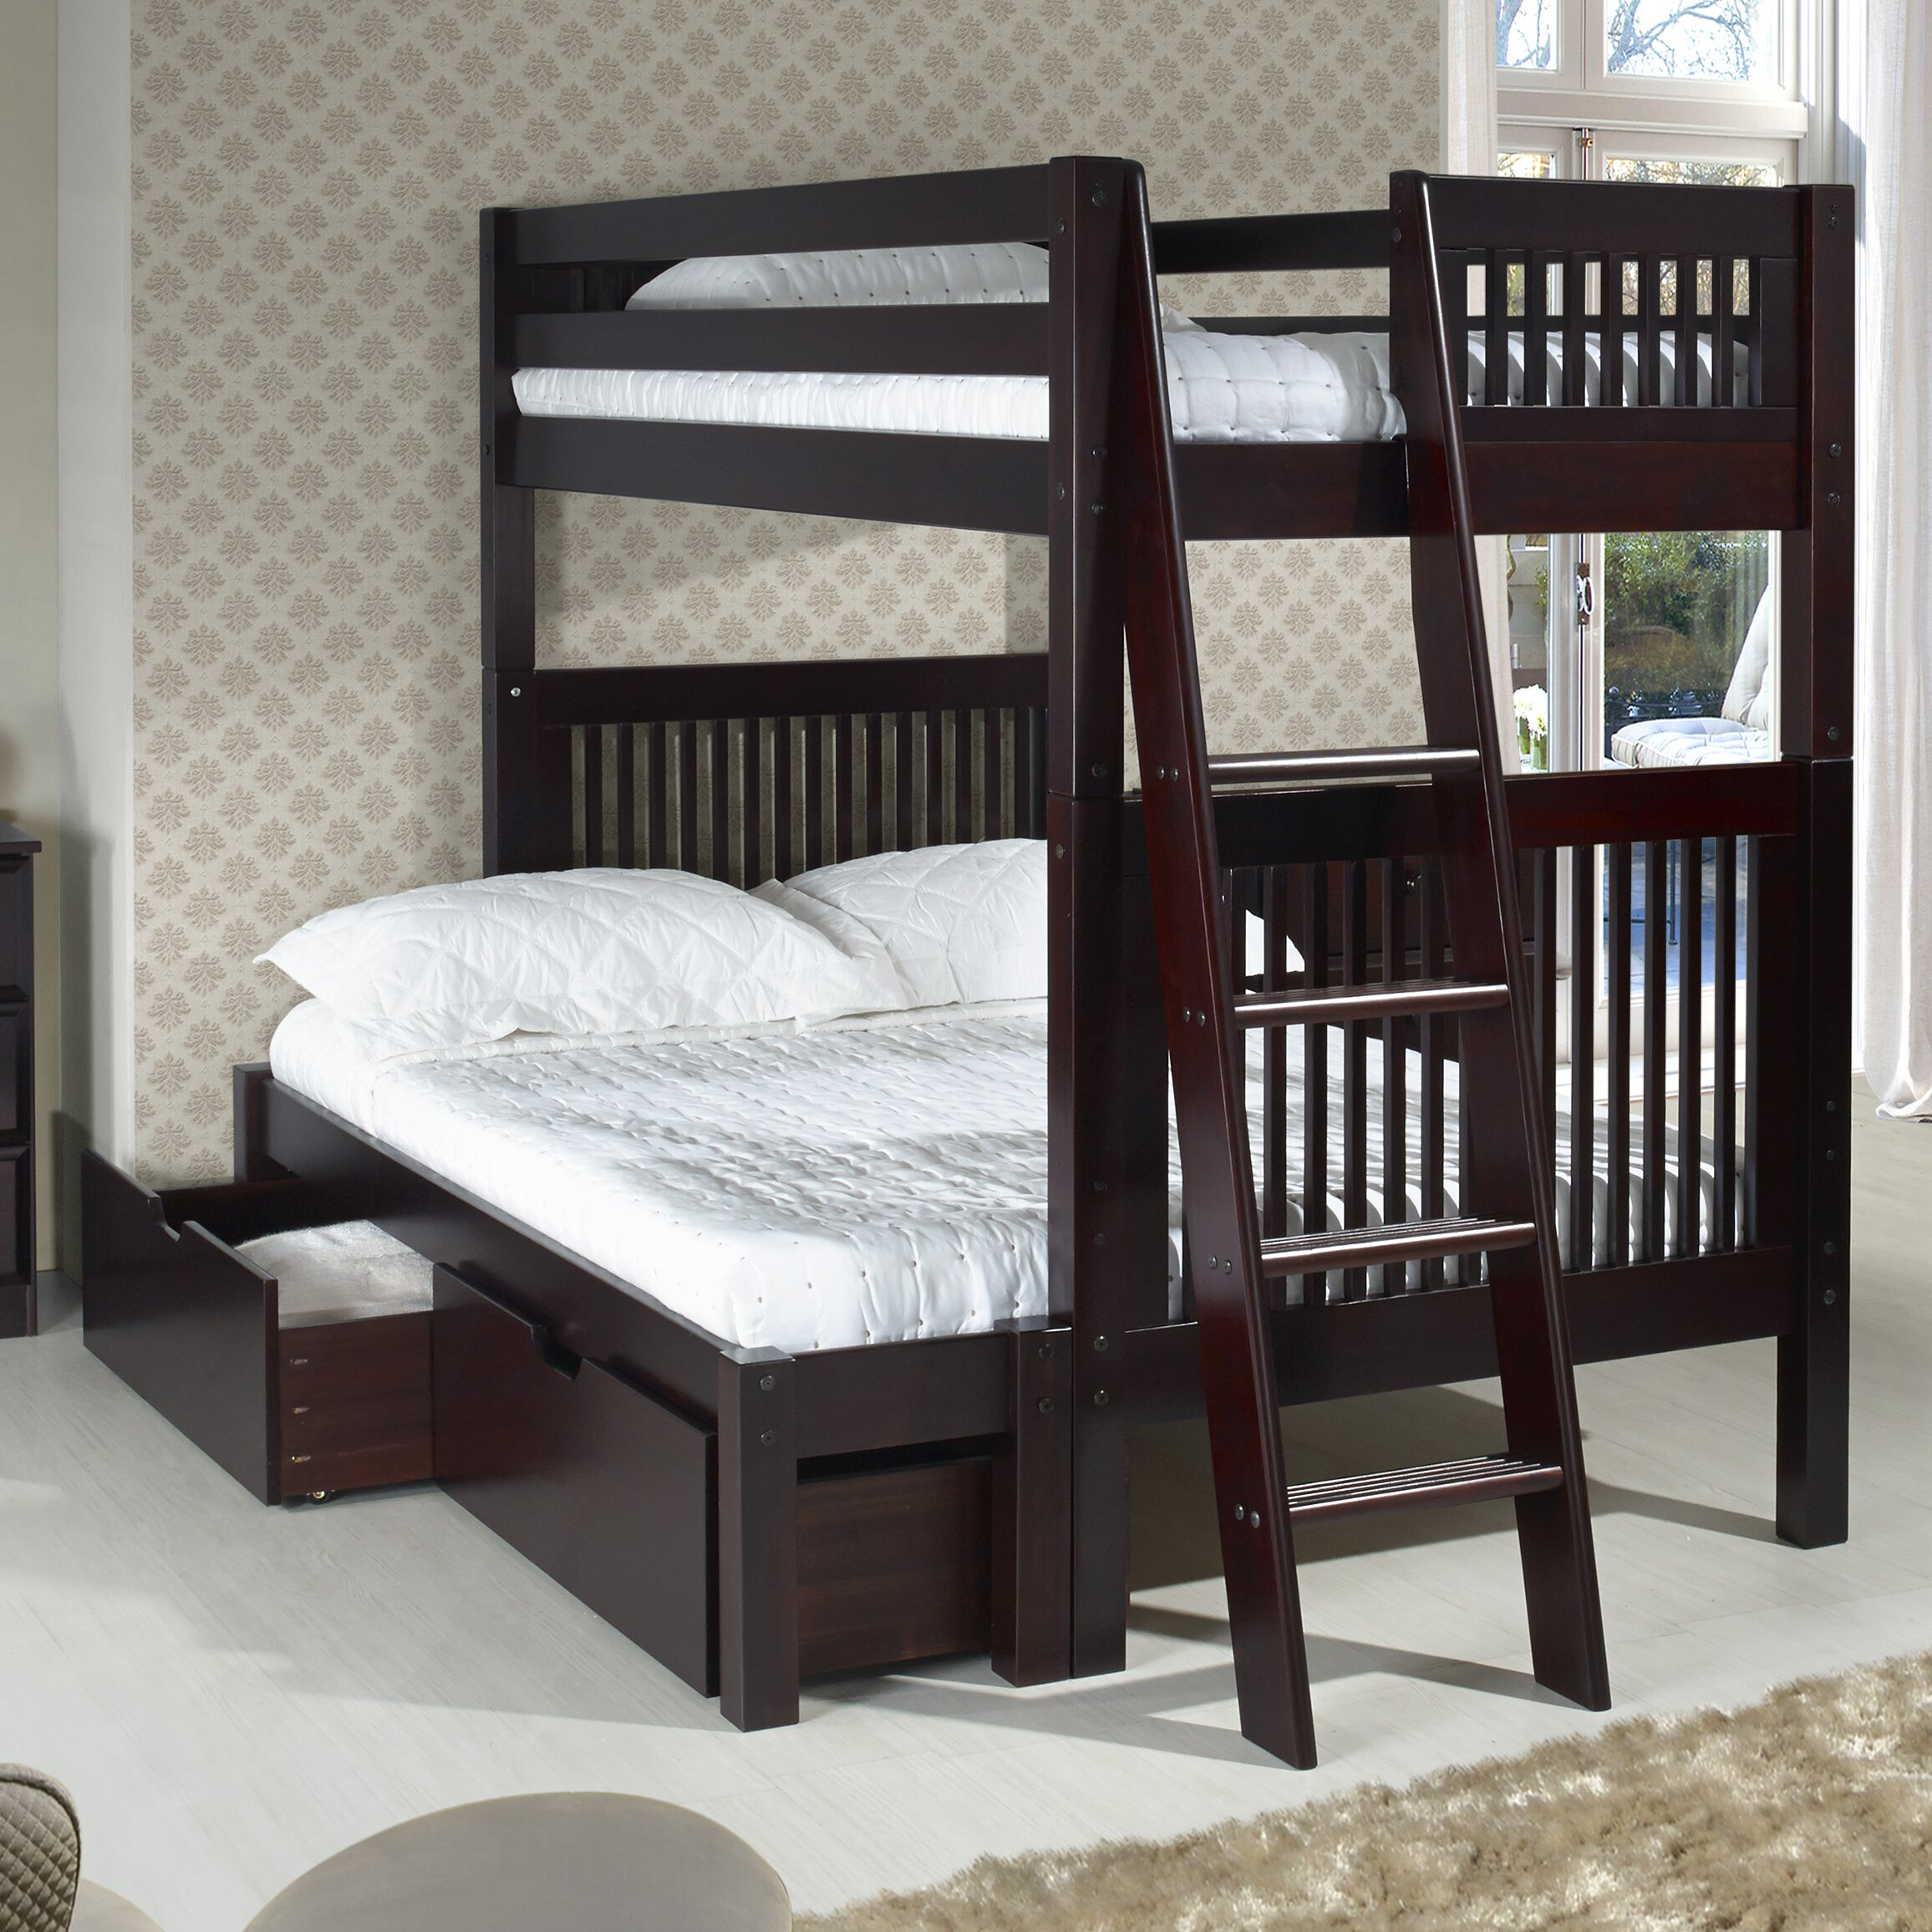 Camaflexi twin over full bunk bed with storage wayfair for Twin bed with storage